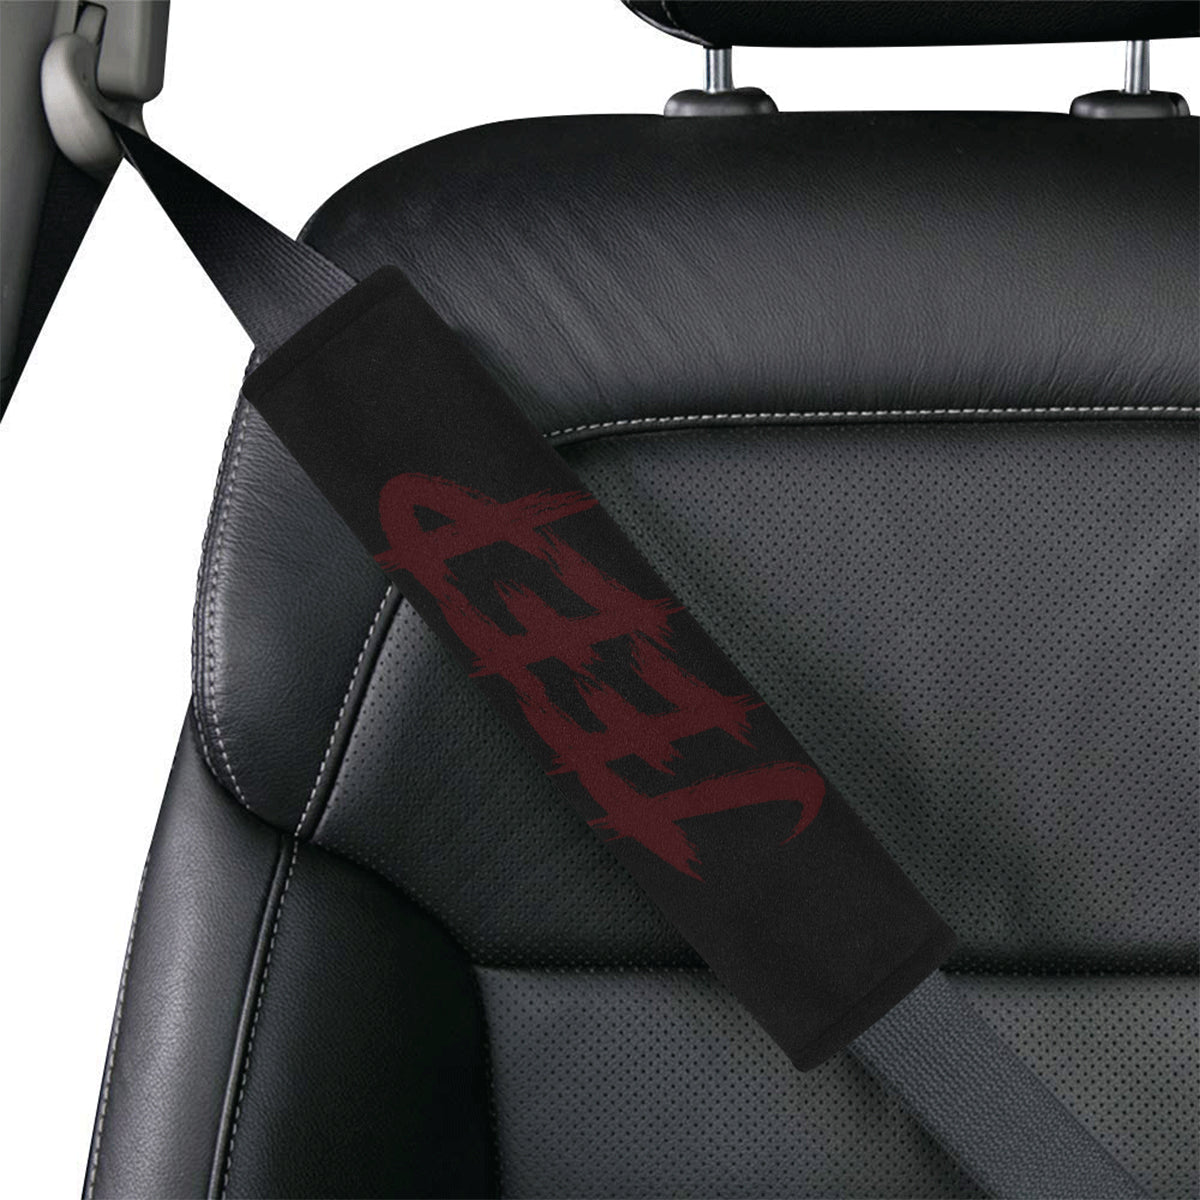 Marroon Jeep Car Seat Belt Cover 7''x12.6''.